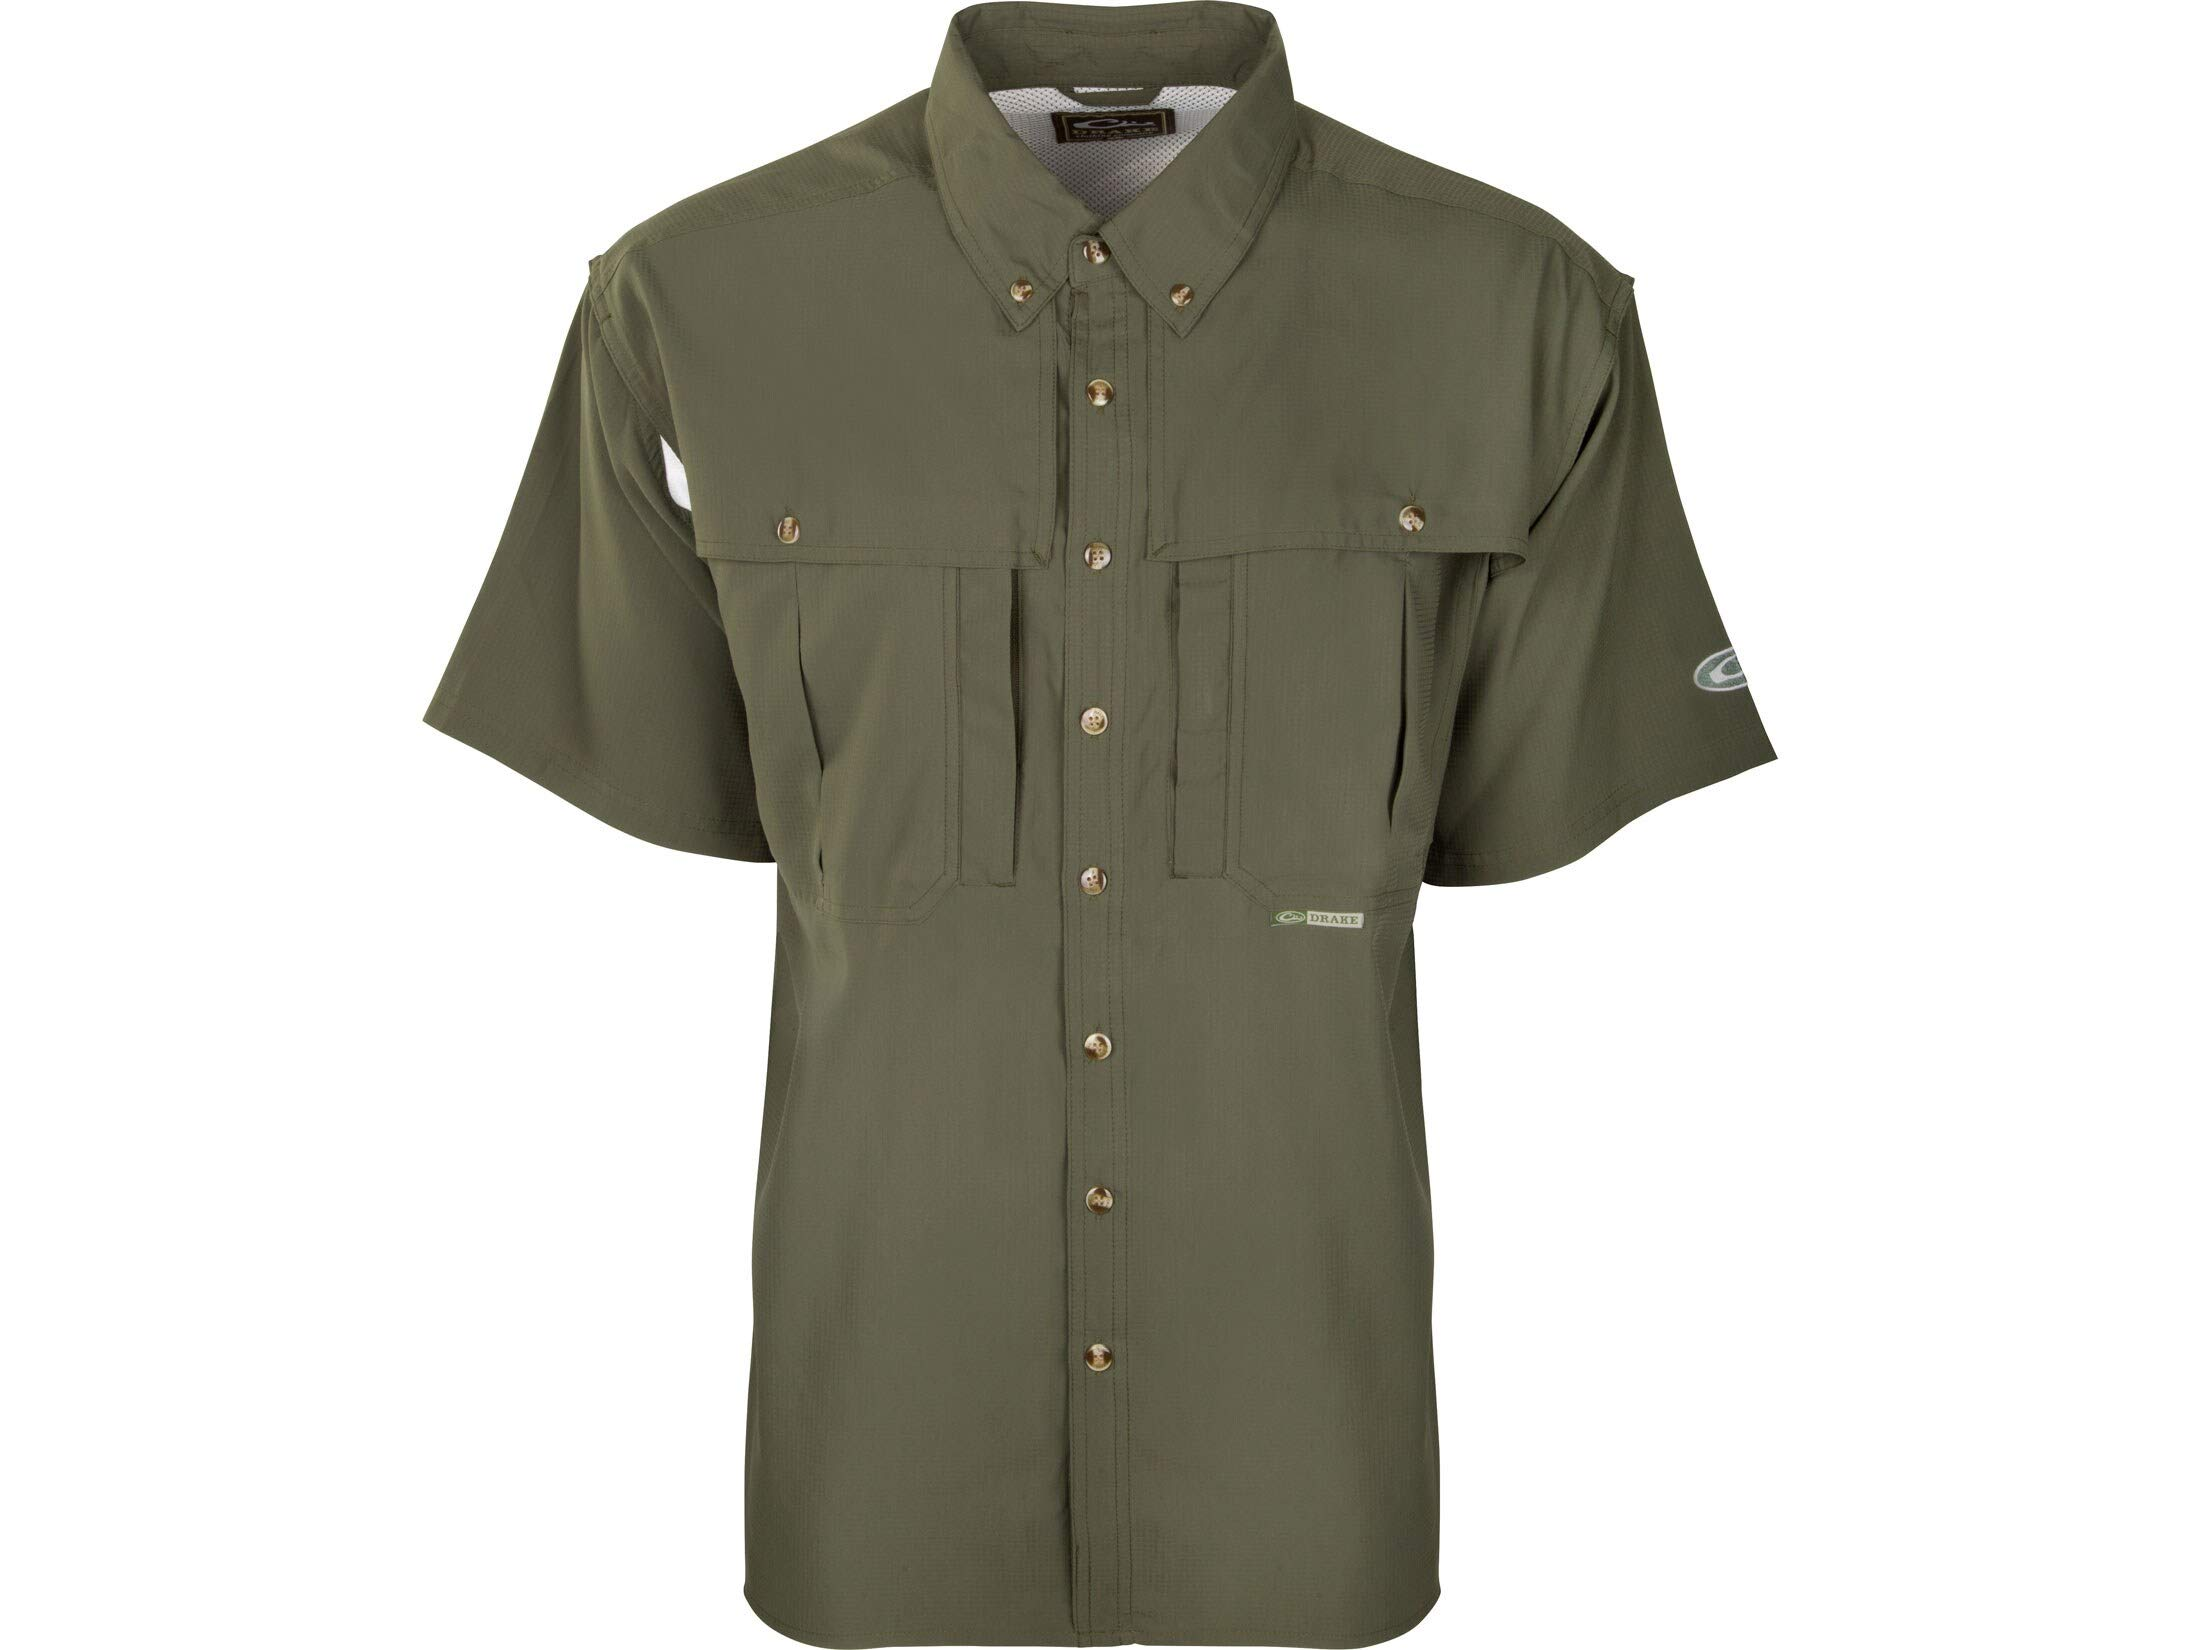 Drake Men's Flyweight Wingshooter's Shirt Short Sleeve Polyester Beetle Green XL by Drake